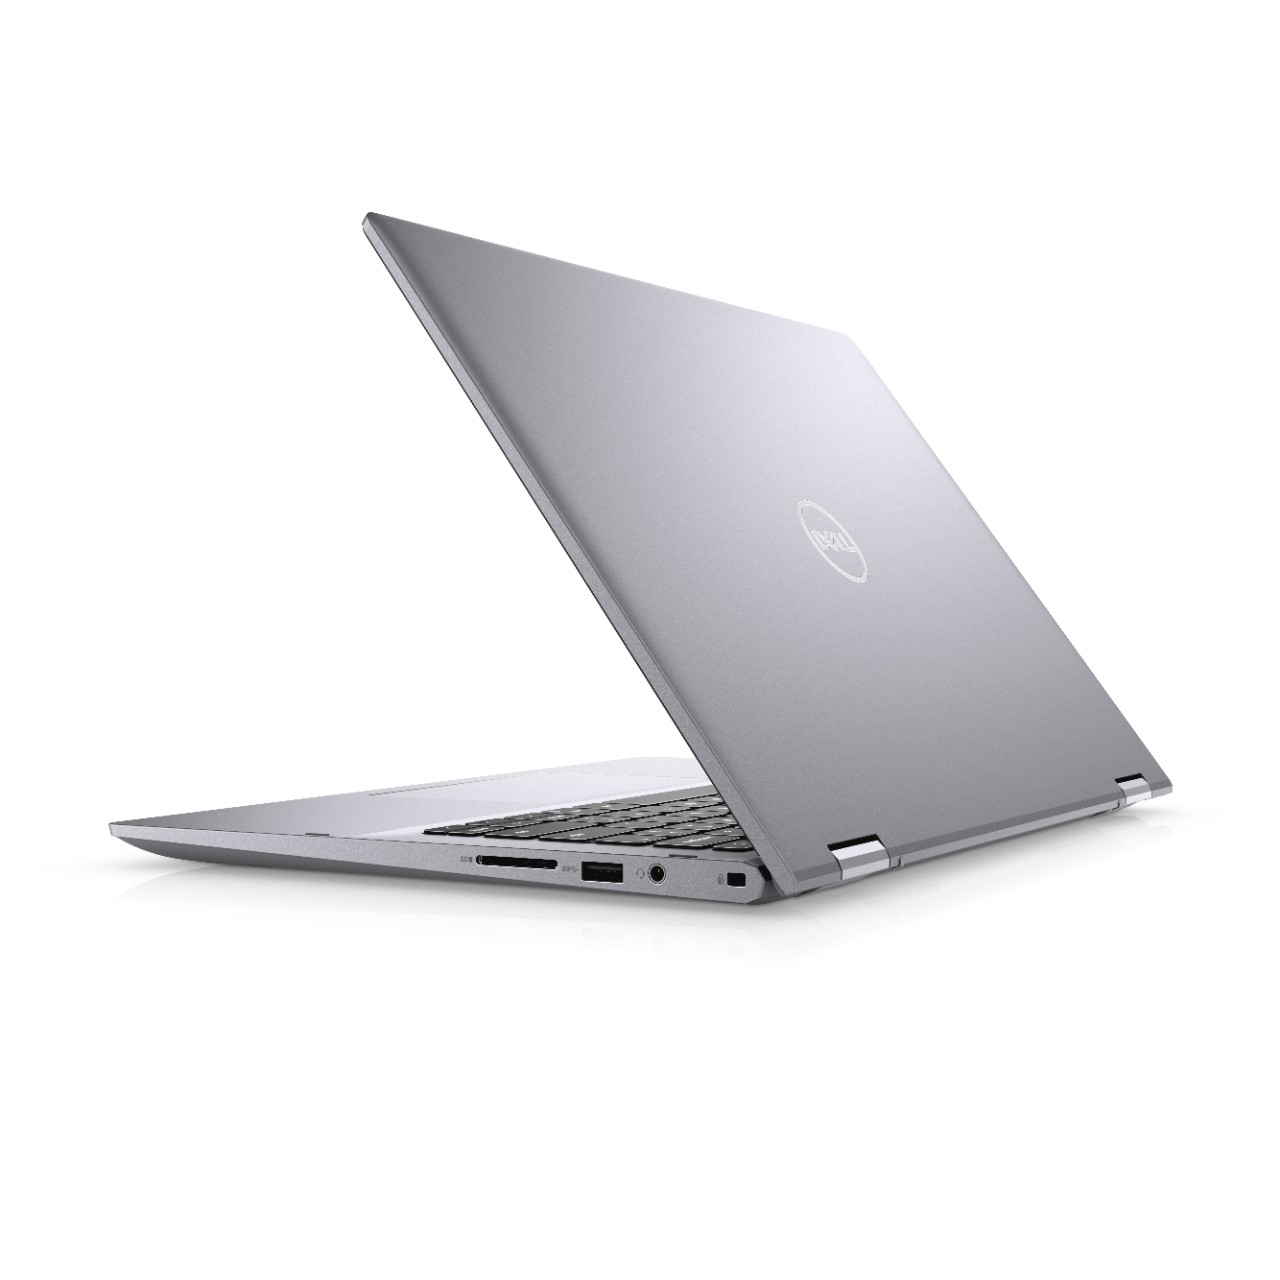 DELL Inspiron 14 5406 Touch/i5-1135G7/8GB/512GB SSD/14